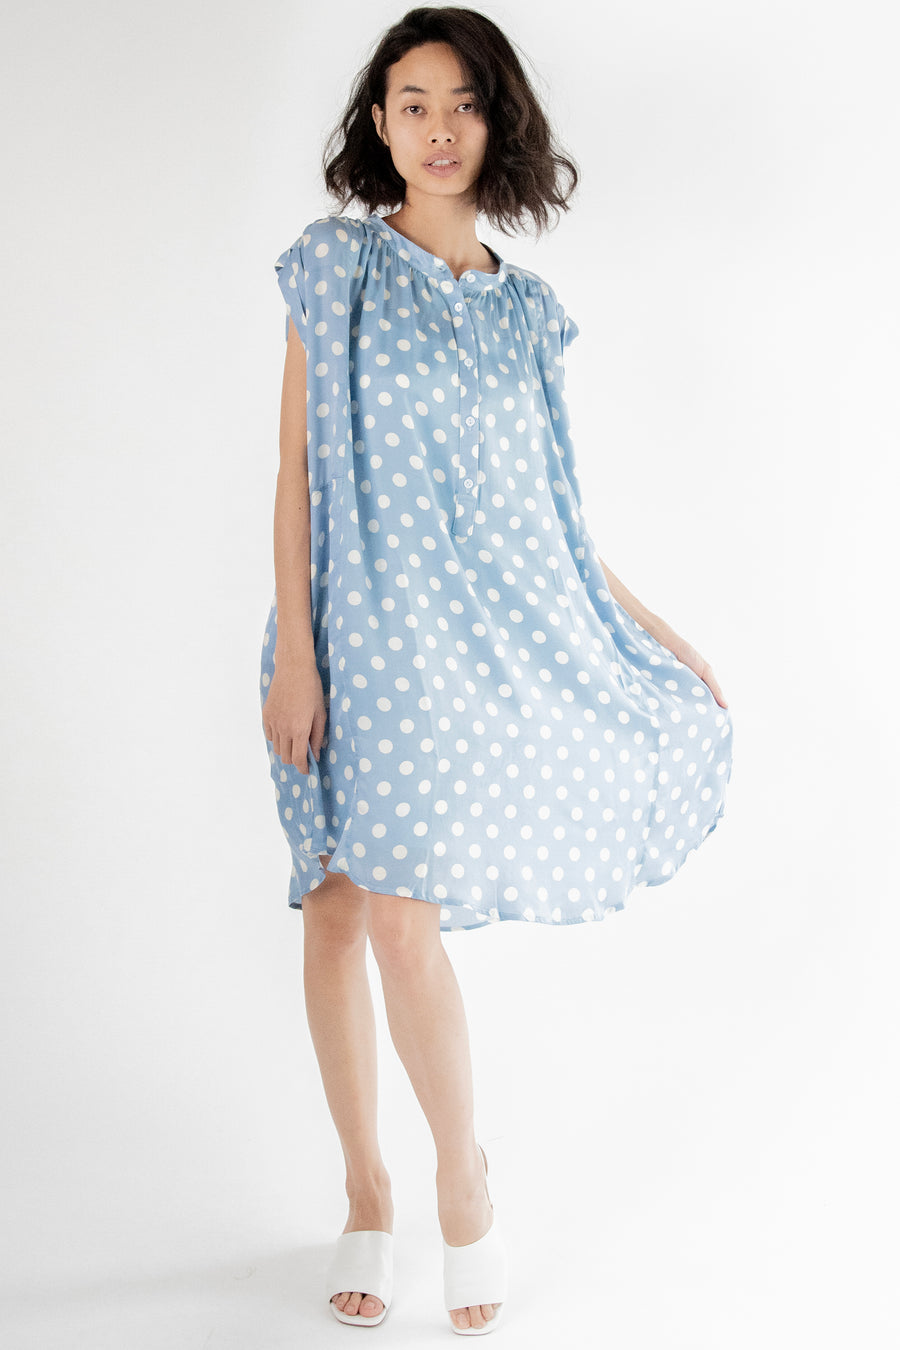 Amanda Modal Silk Polka Dot Dress